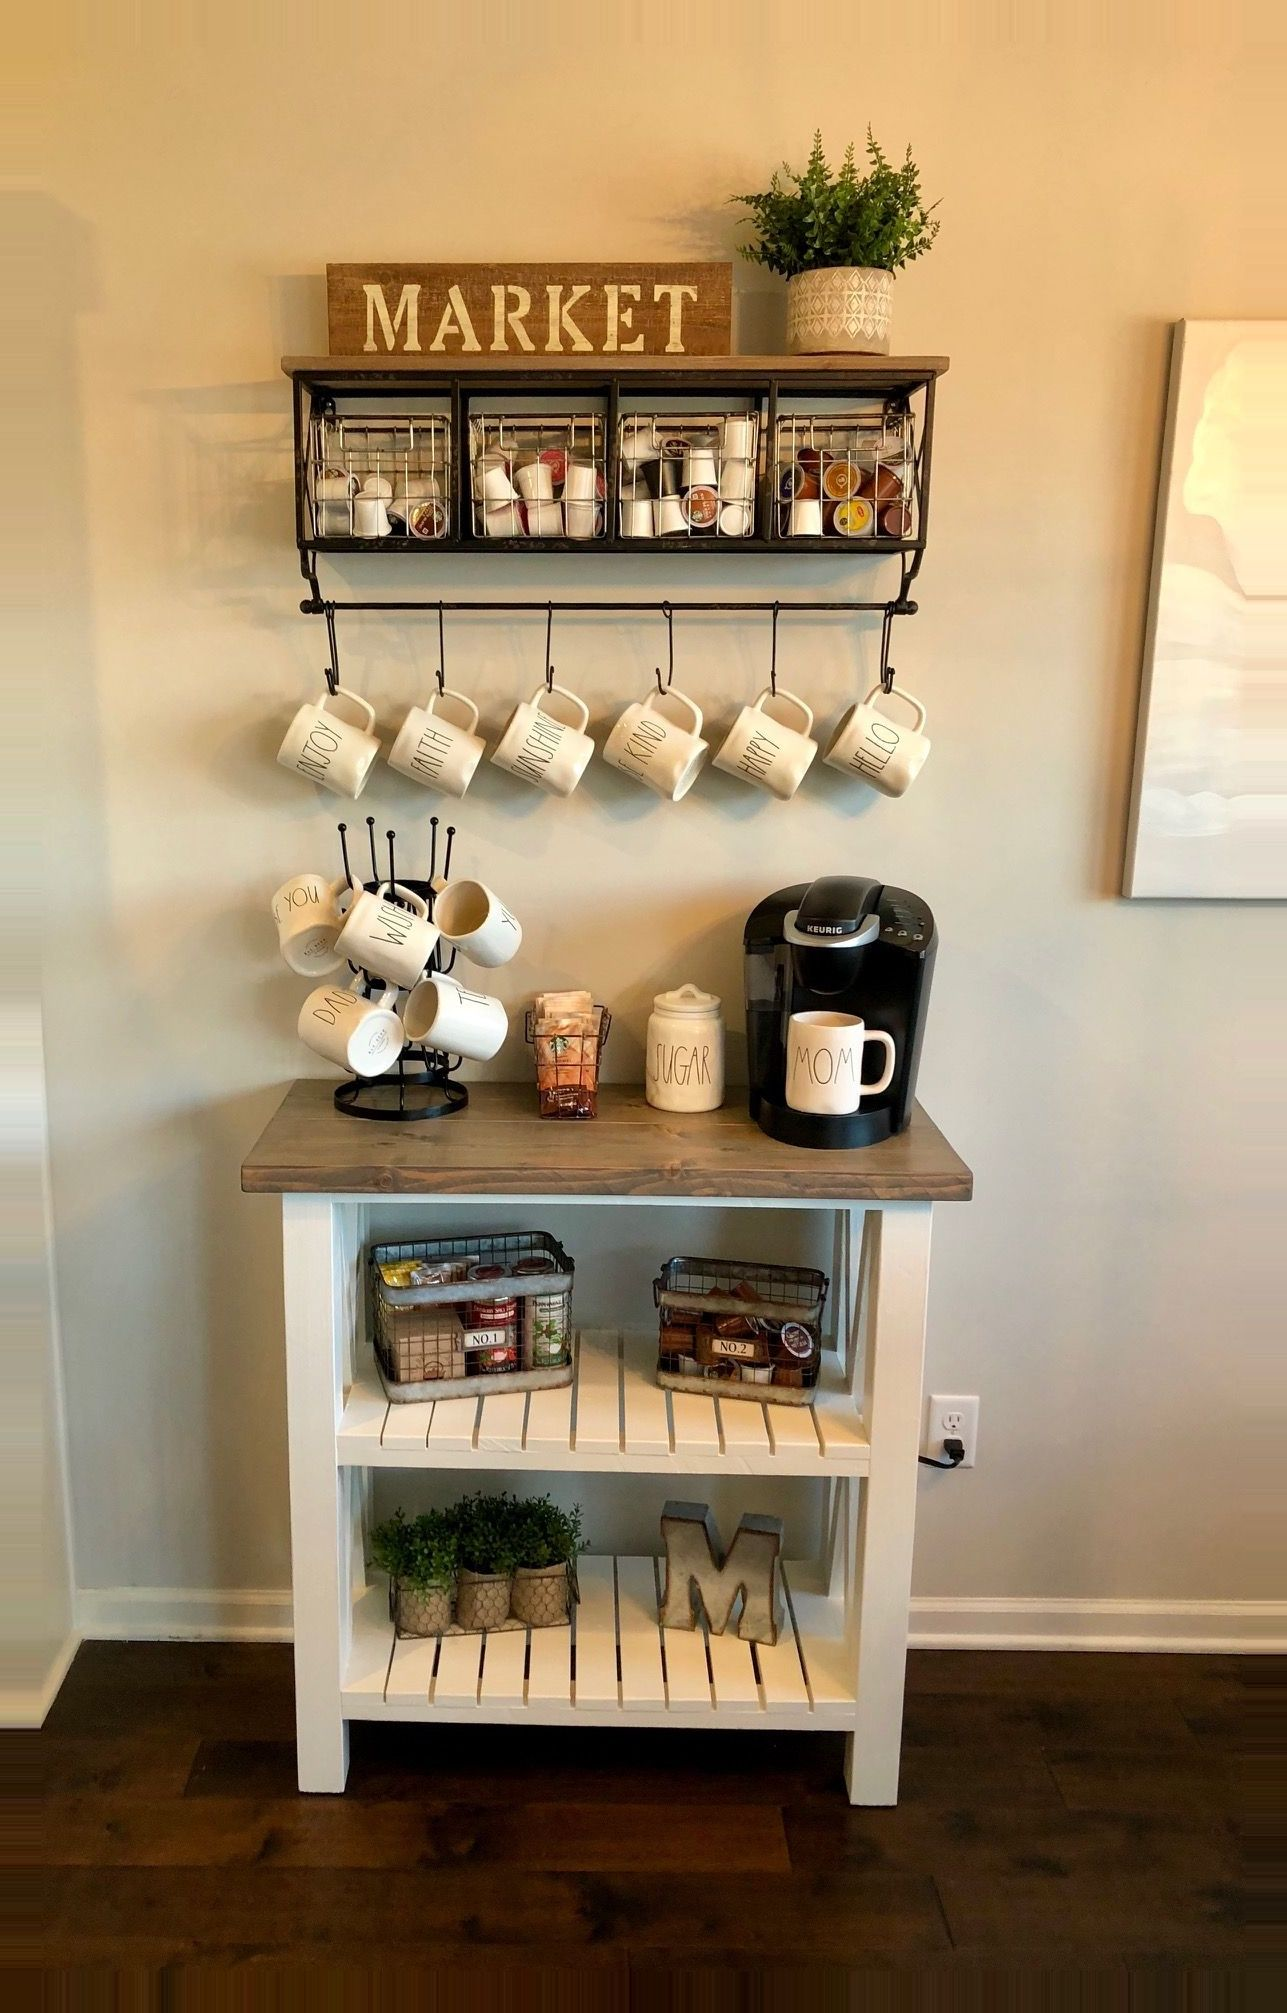 #Bar #coffee #Coffee stations #coffeebar #DIY #farmhouse #raedunn Farmhouse coffee bar #diy #coffeebar #farmhouse #raedunn You are in the right place about home Coffee stations Here we offer you the most beautiful pictures about the Coffee stations hotel you are looking for. When you examine the Farmhouse coffee bar #diy #coffeebar #farmhouse #raedunn part of the picture you can get the massage we want to deliver. Yo can see that this picture is ann acclaimed one and the quality by looking at t